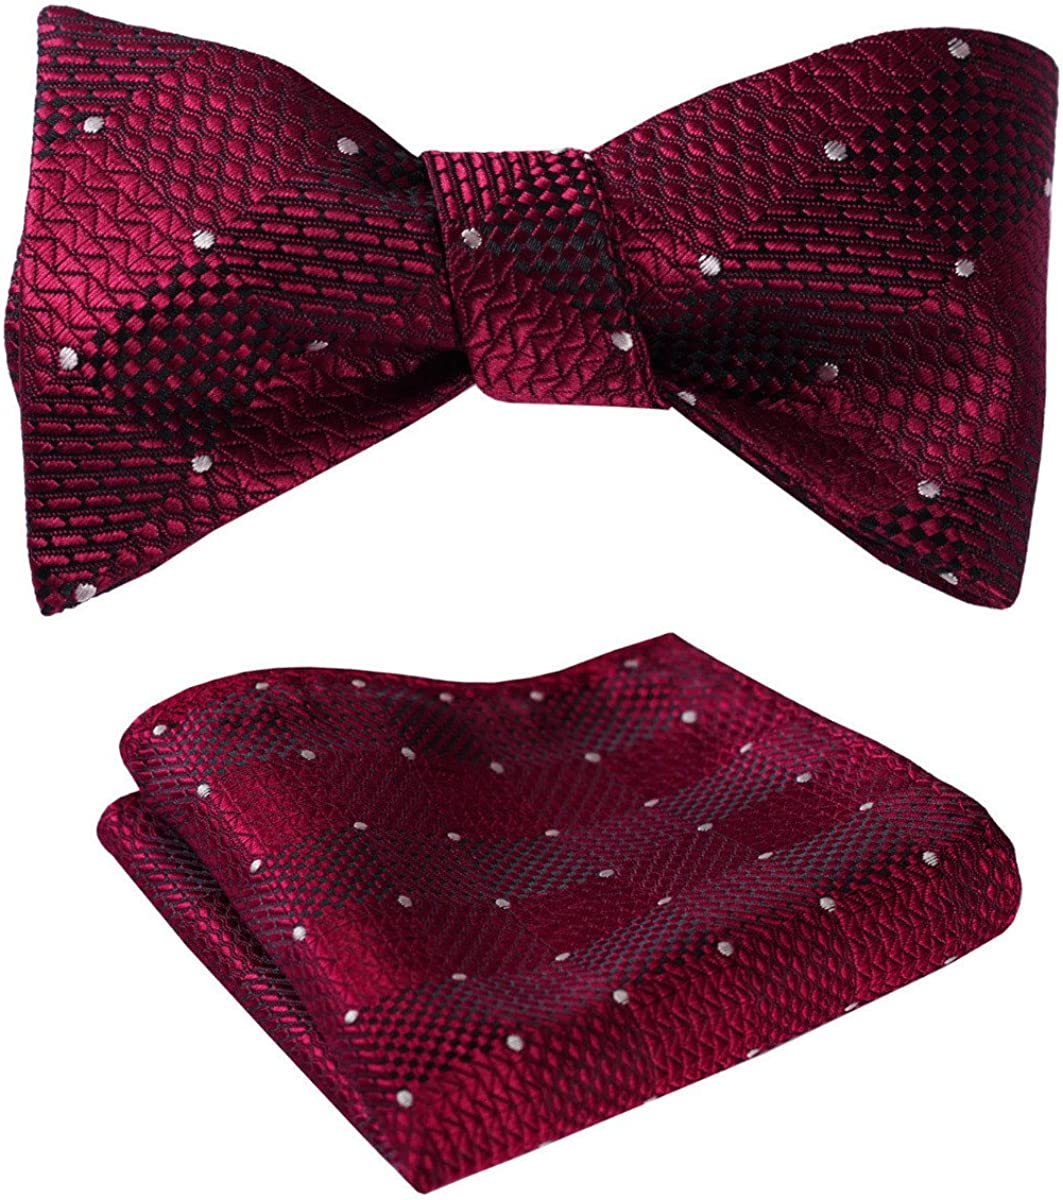 Mens Bow Tie Checked Plaid Self M BowTies Classic for Indefinitely BowTie Limited Special Price